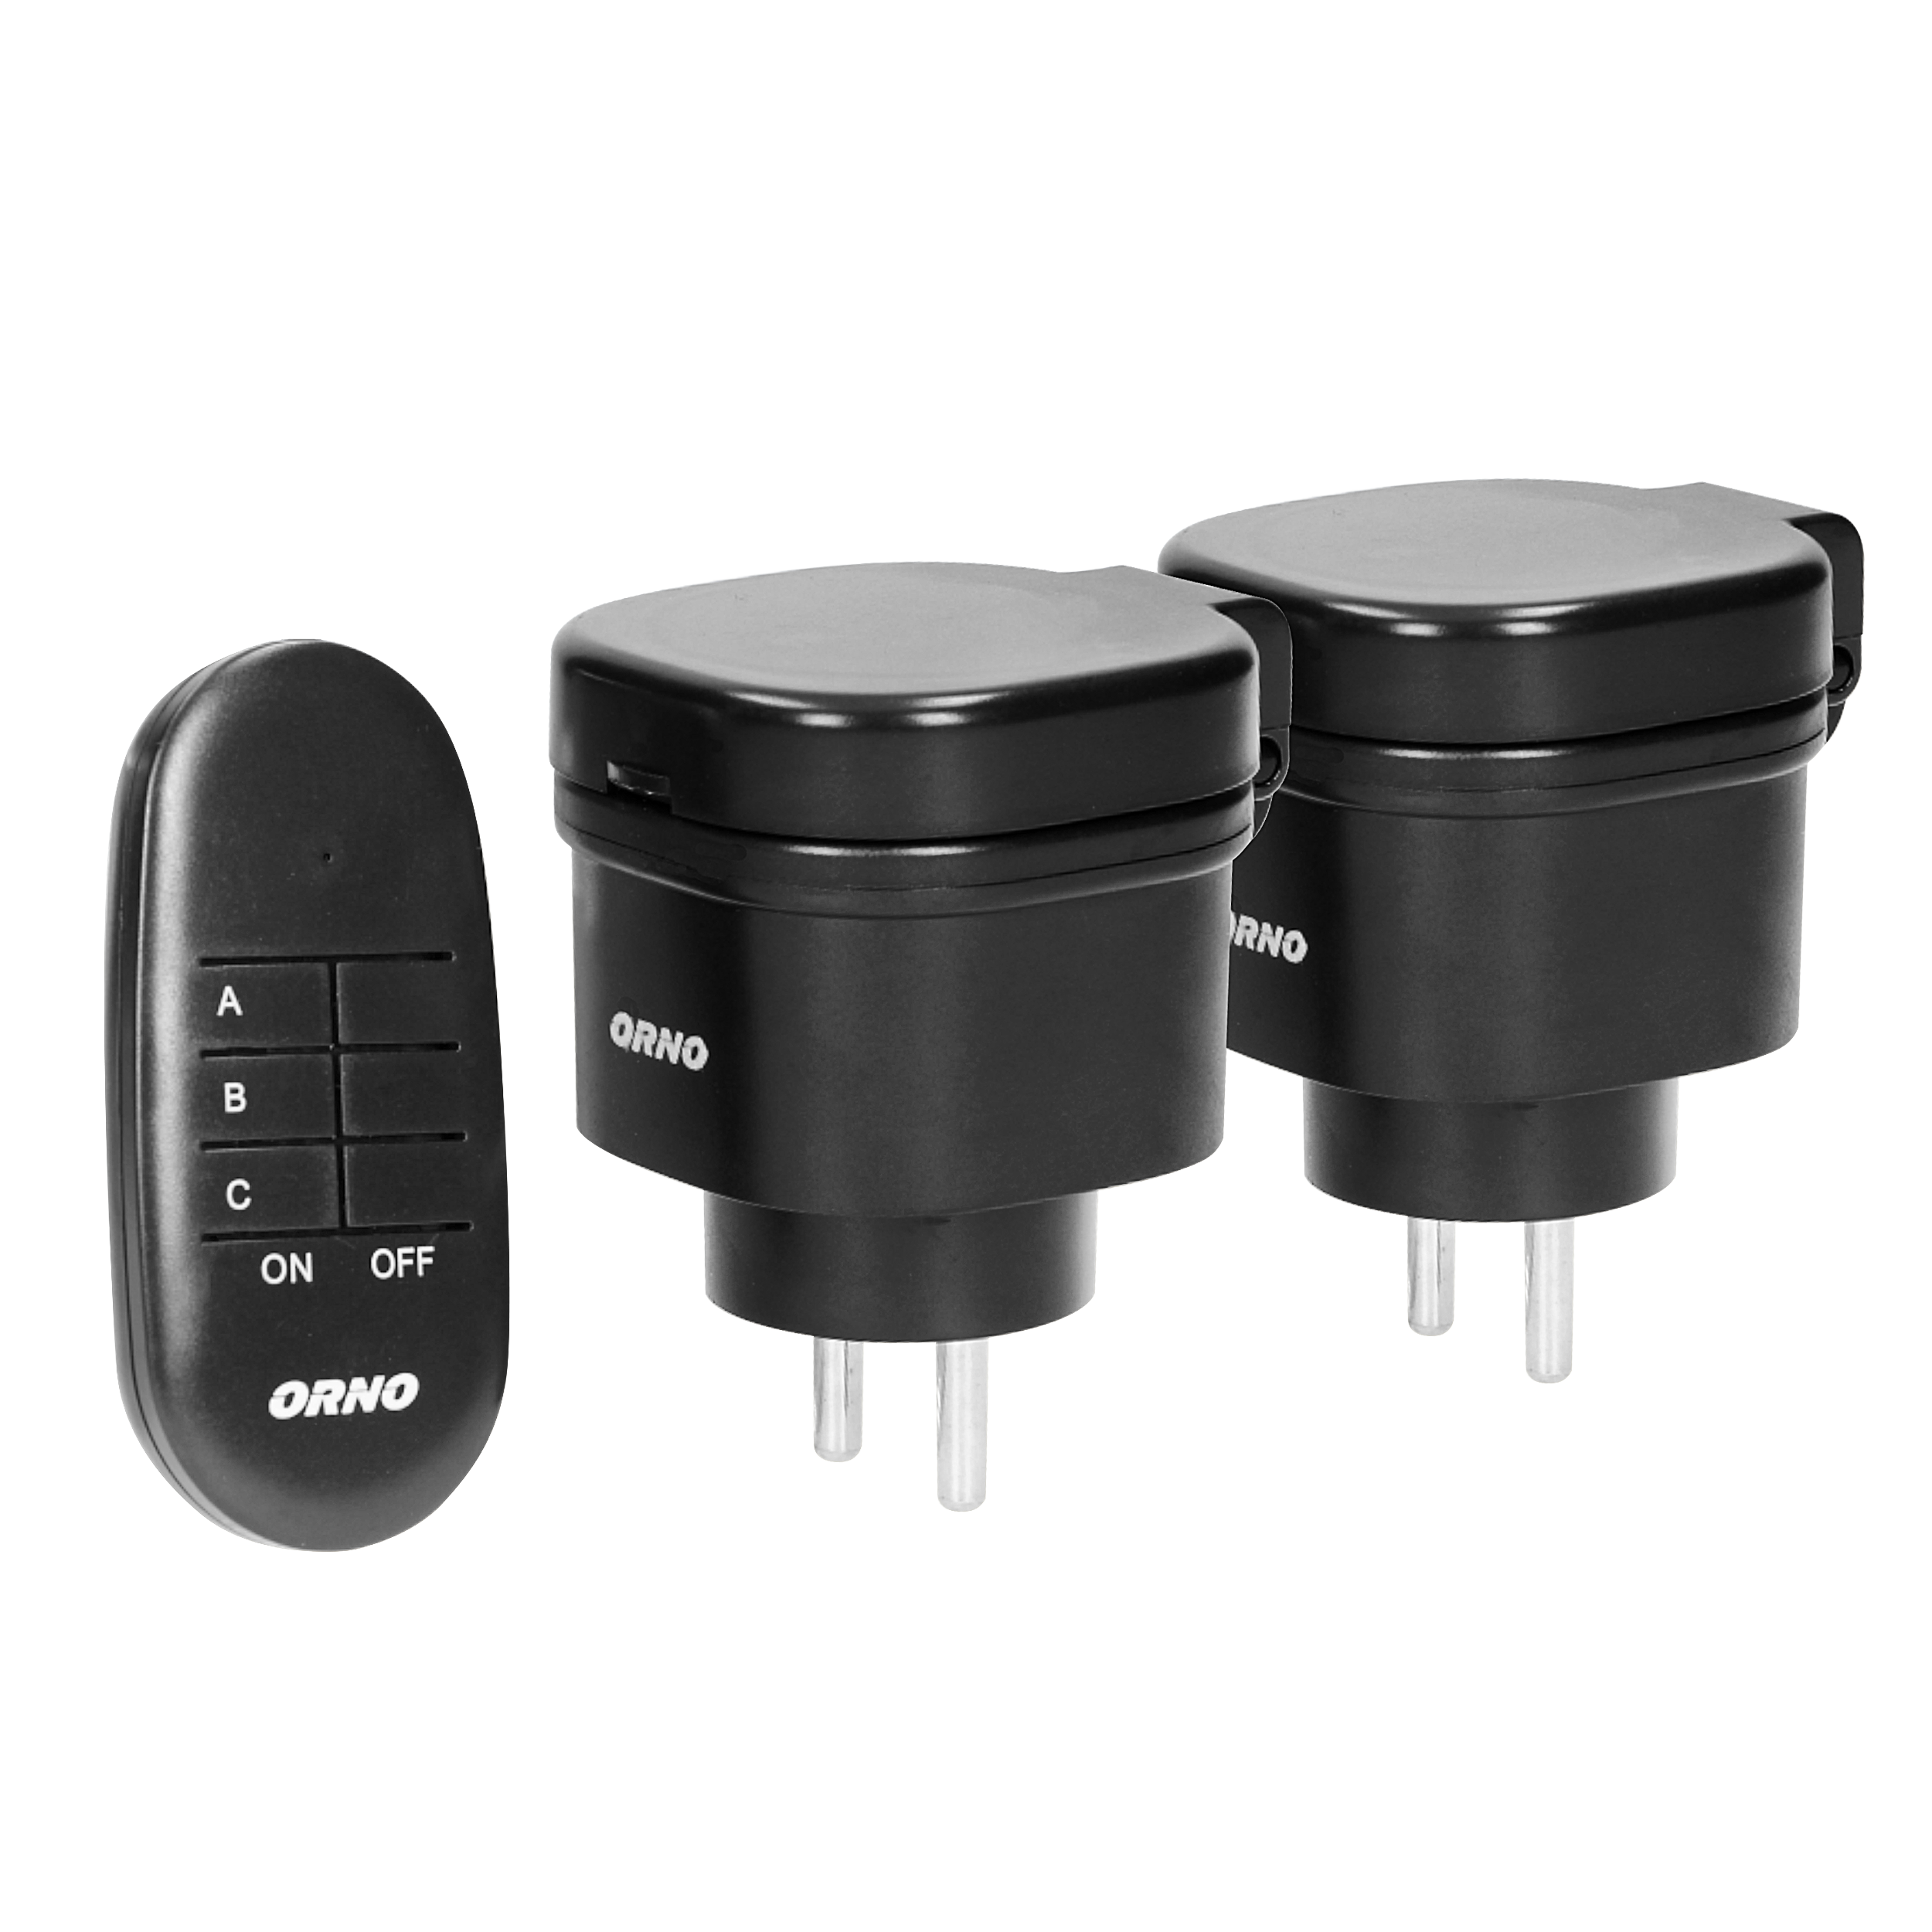 Outdoor mini wireless sockets with remote control, 2+1, IP44, Schuko